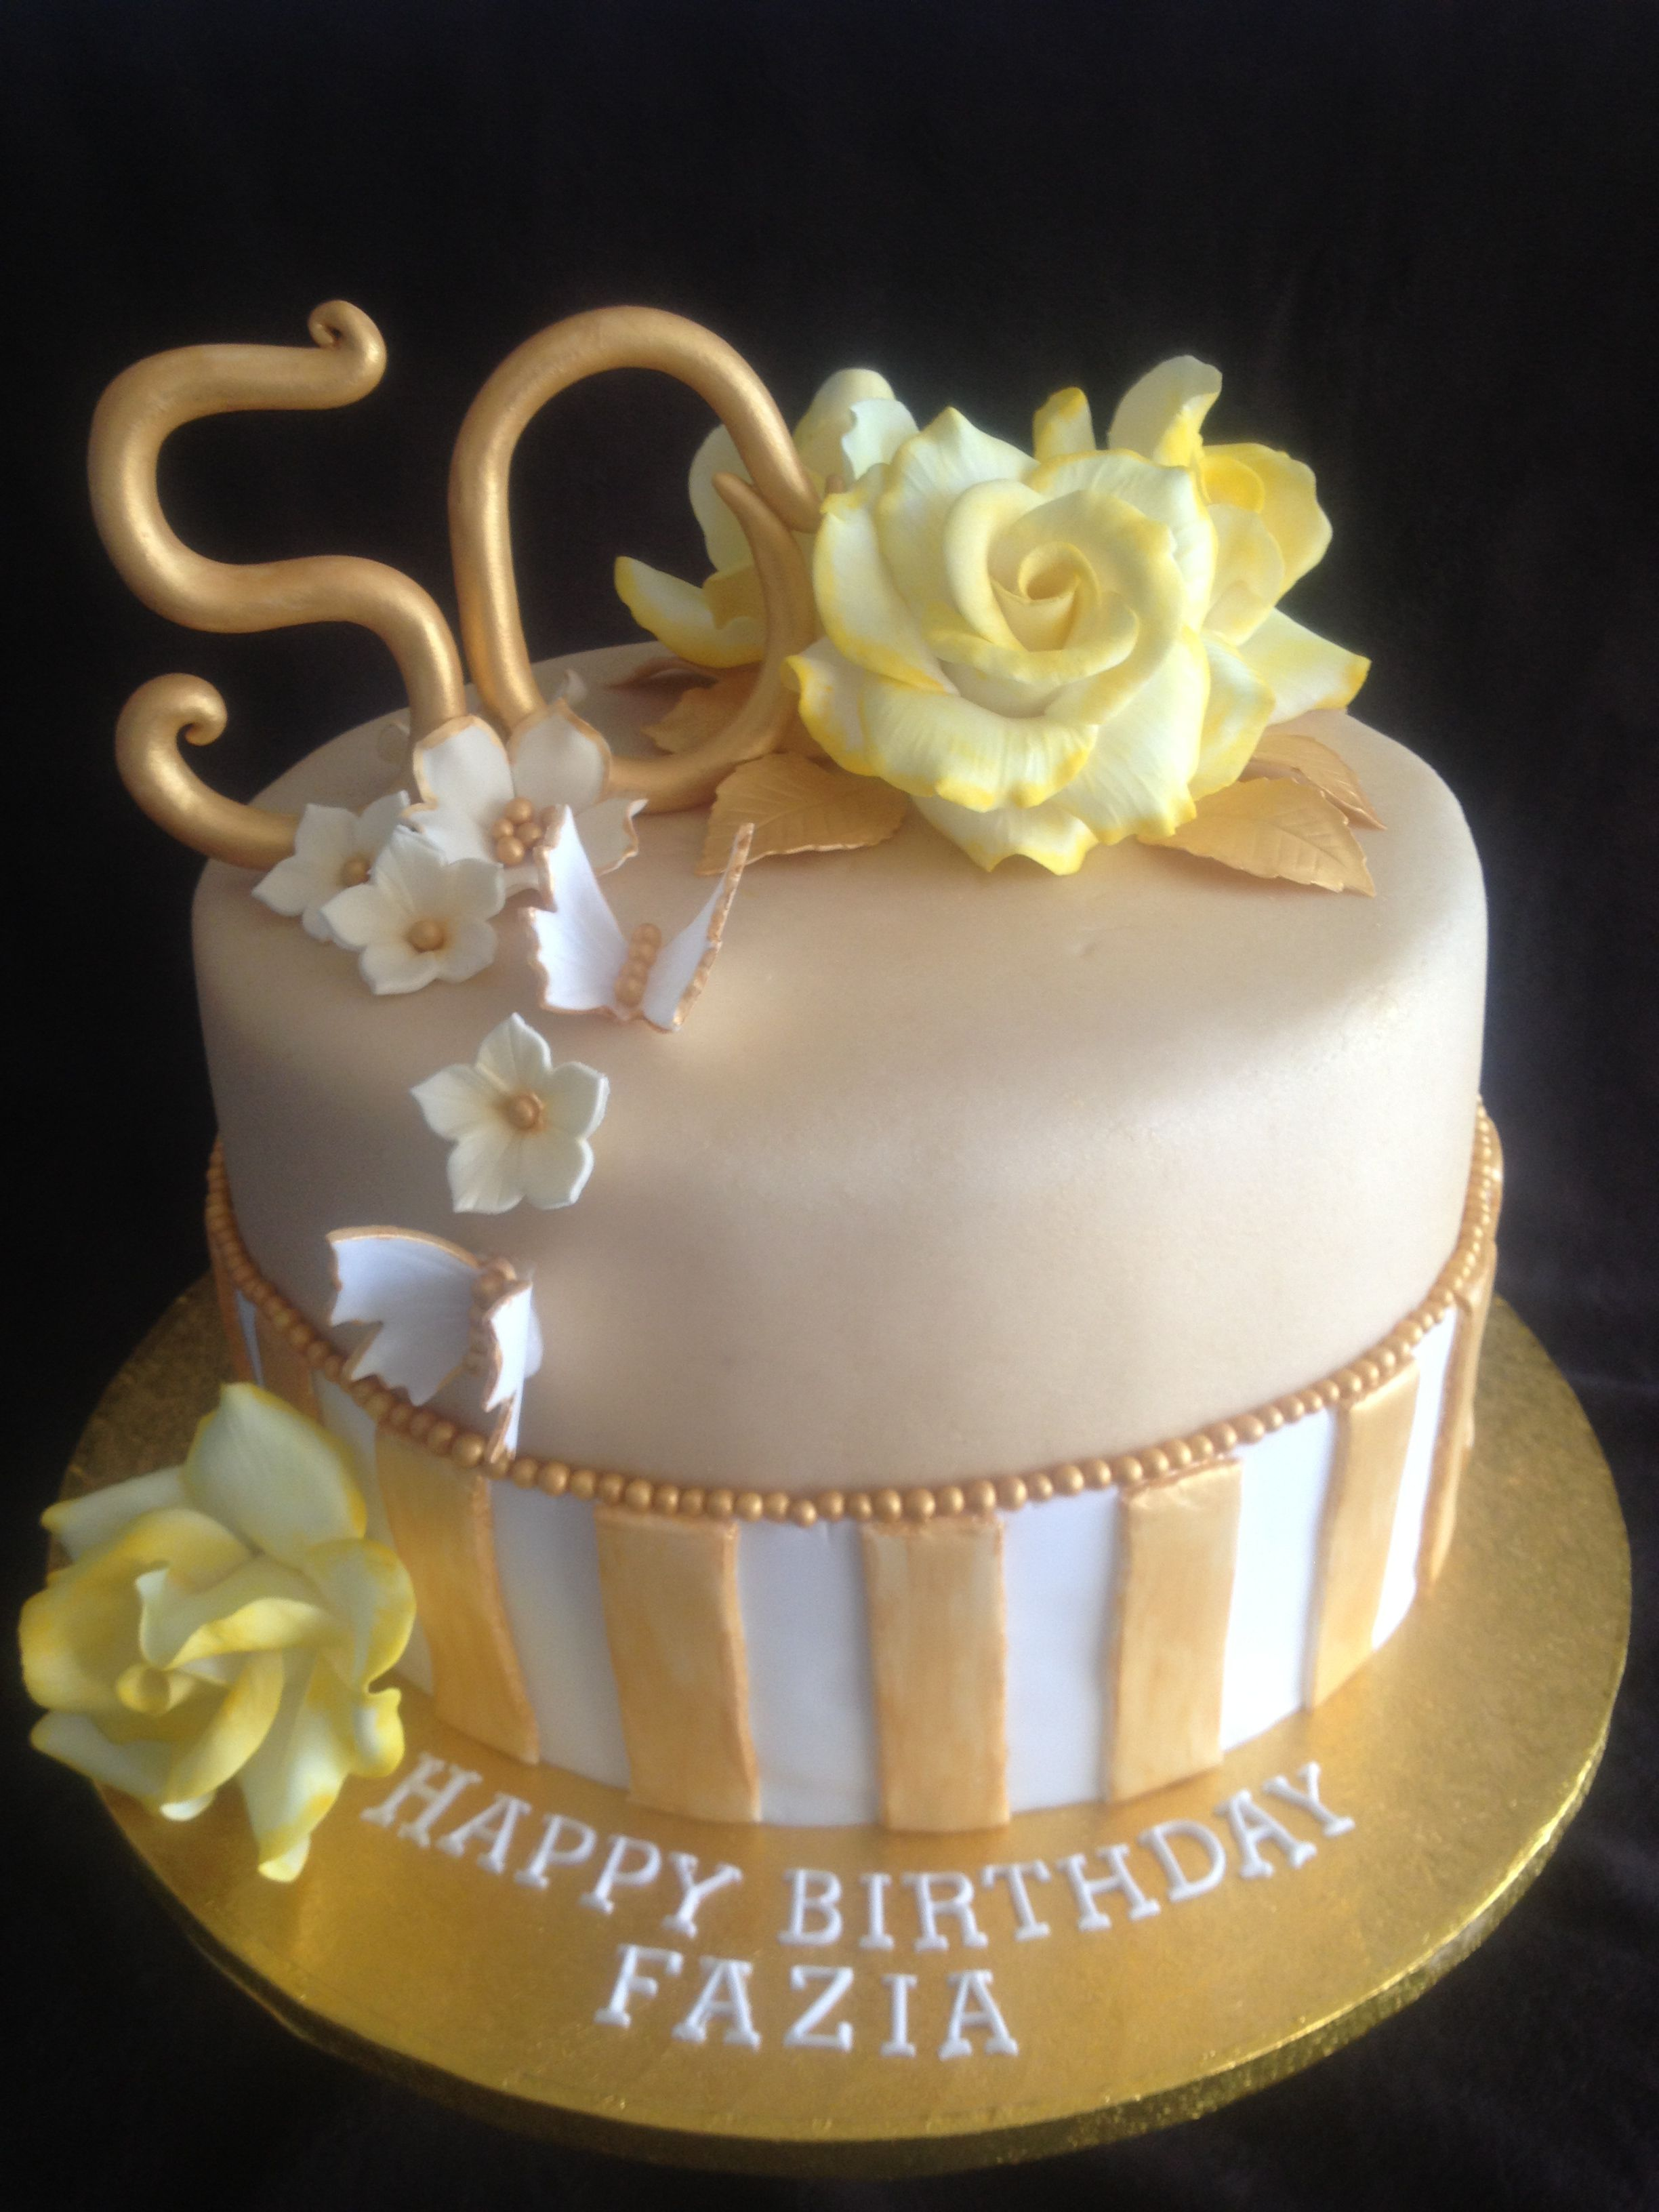 Birthday Cakes Images For 50 Year Old Woman : Images Of 50th Birthday Cake Ideas For Women Party ...